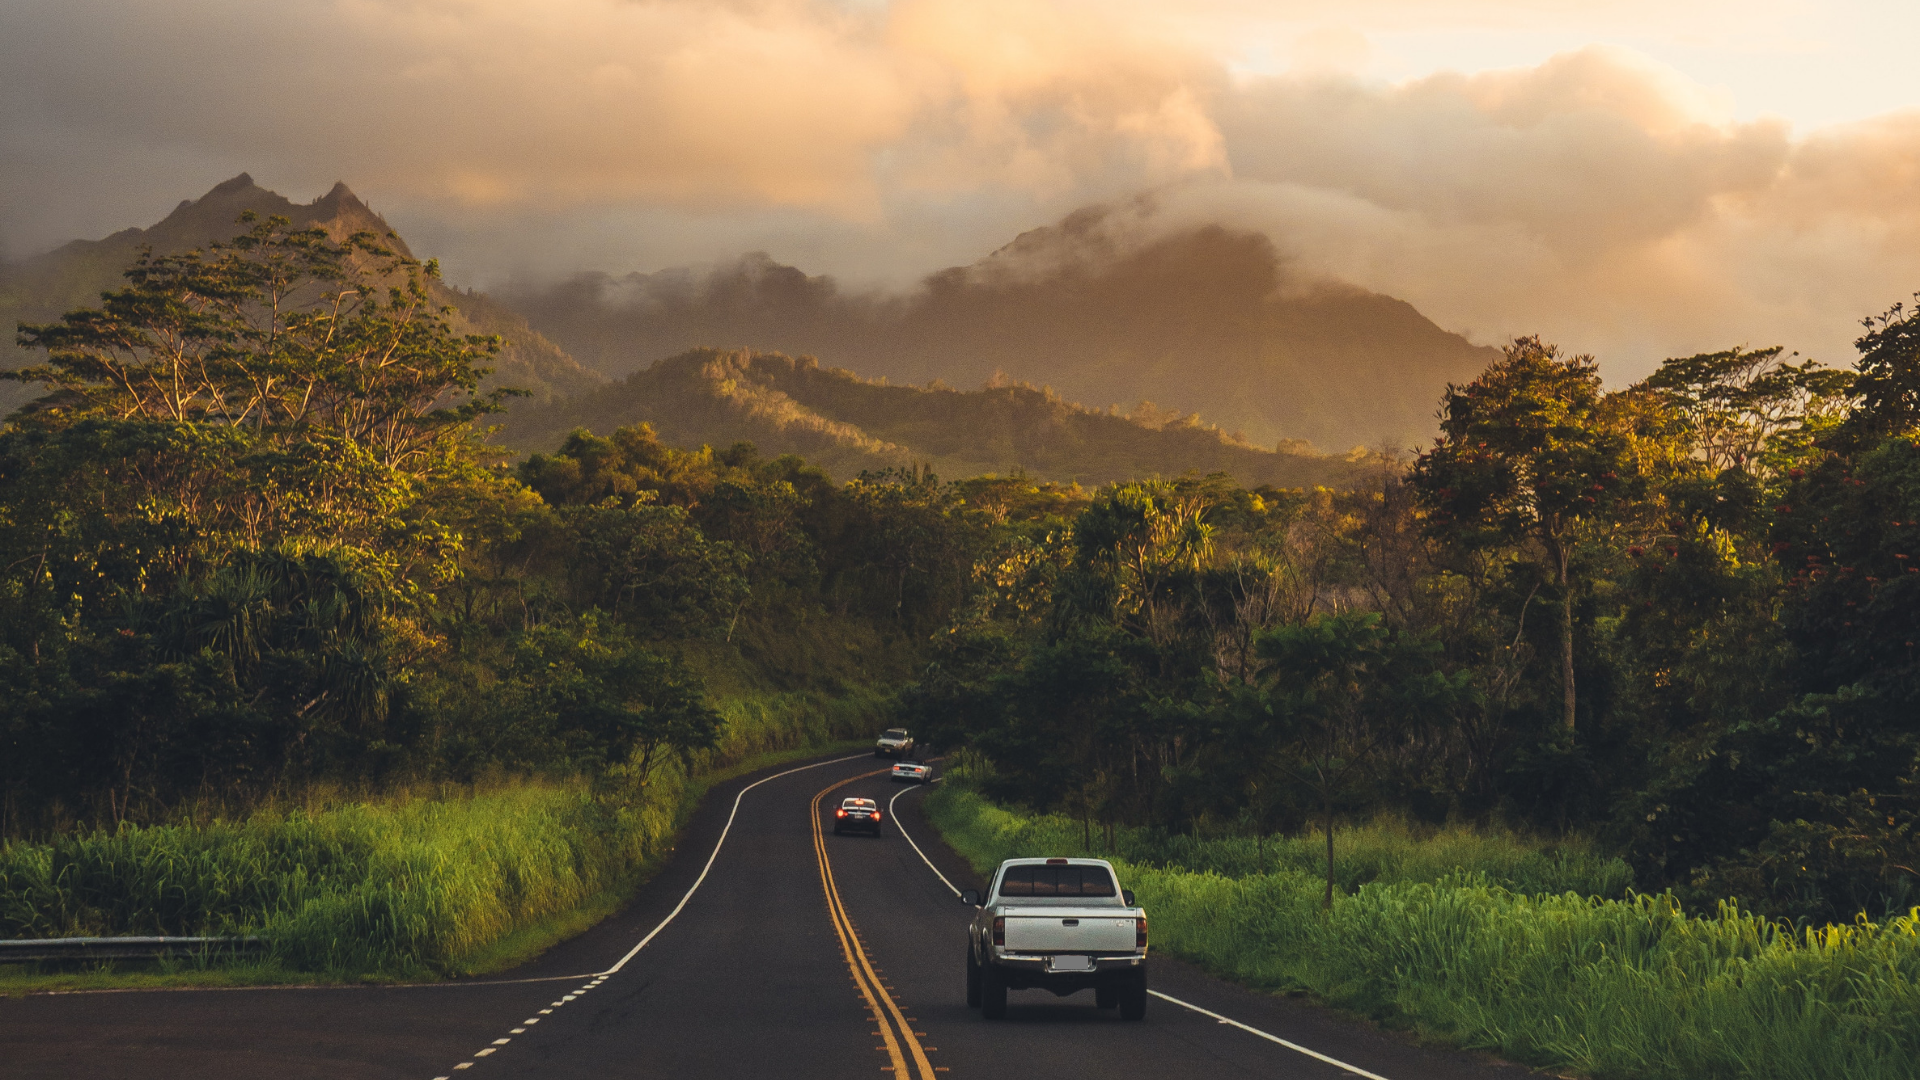 Moving to Hawaii? Should you ship your car or buy a car?